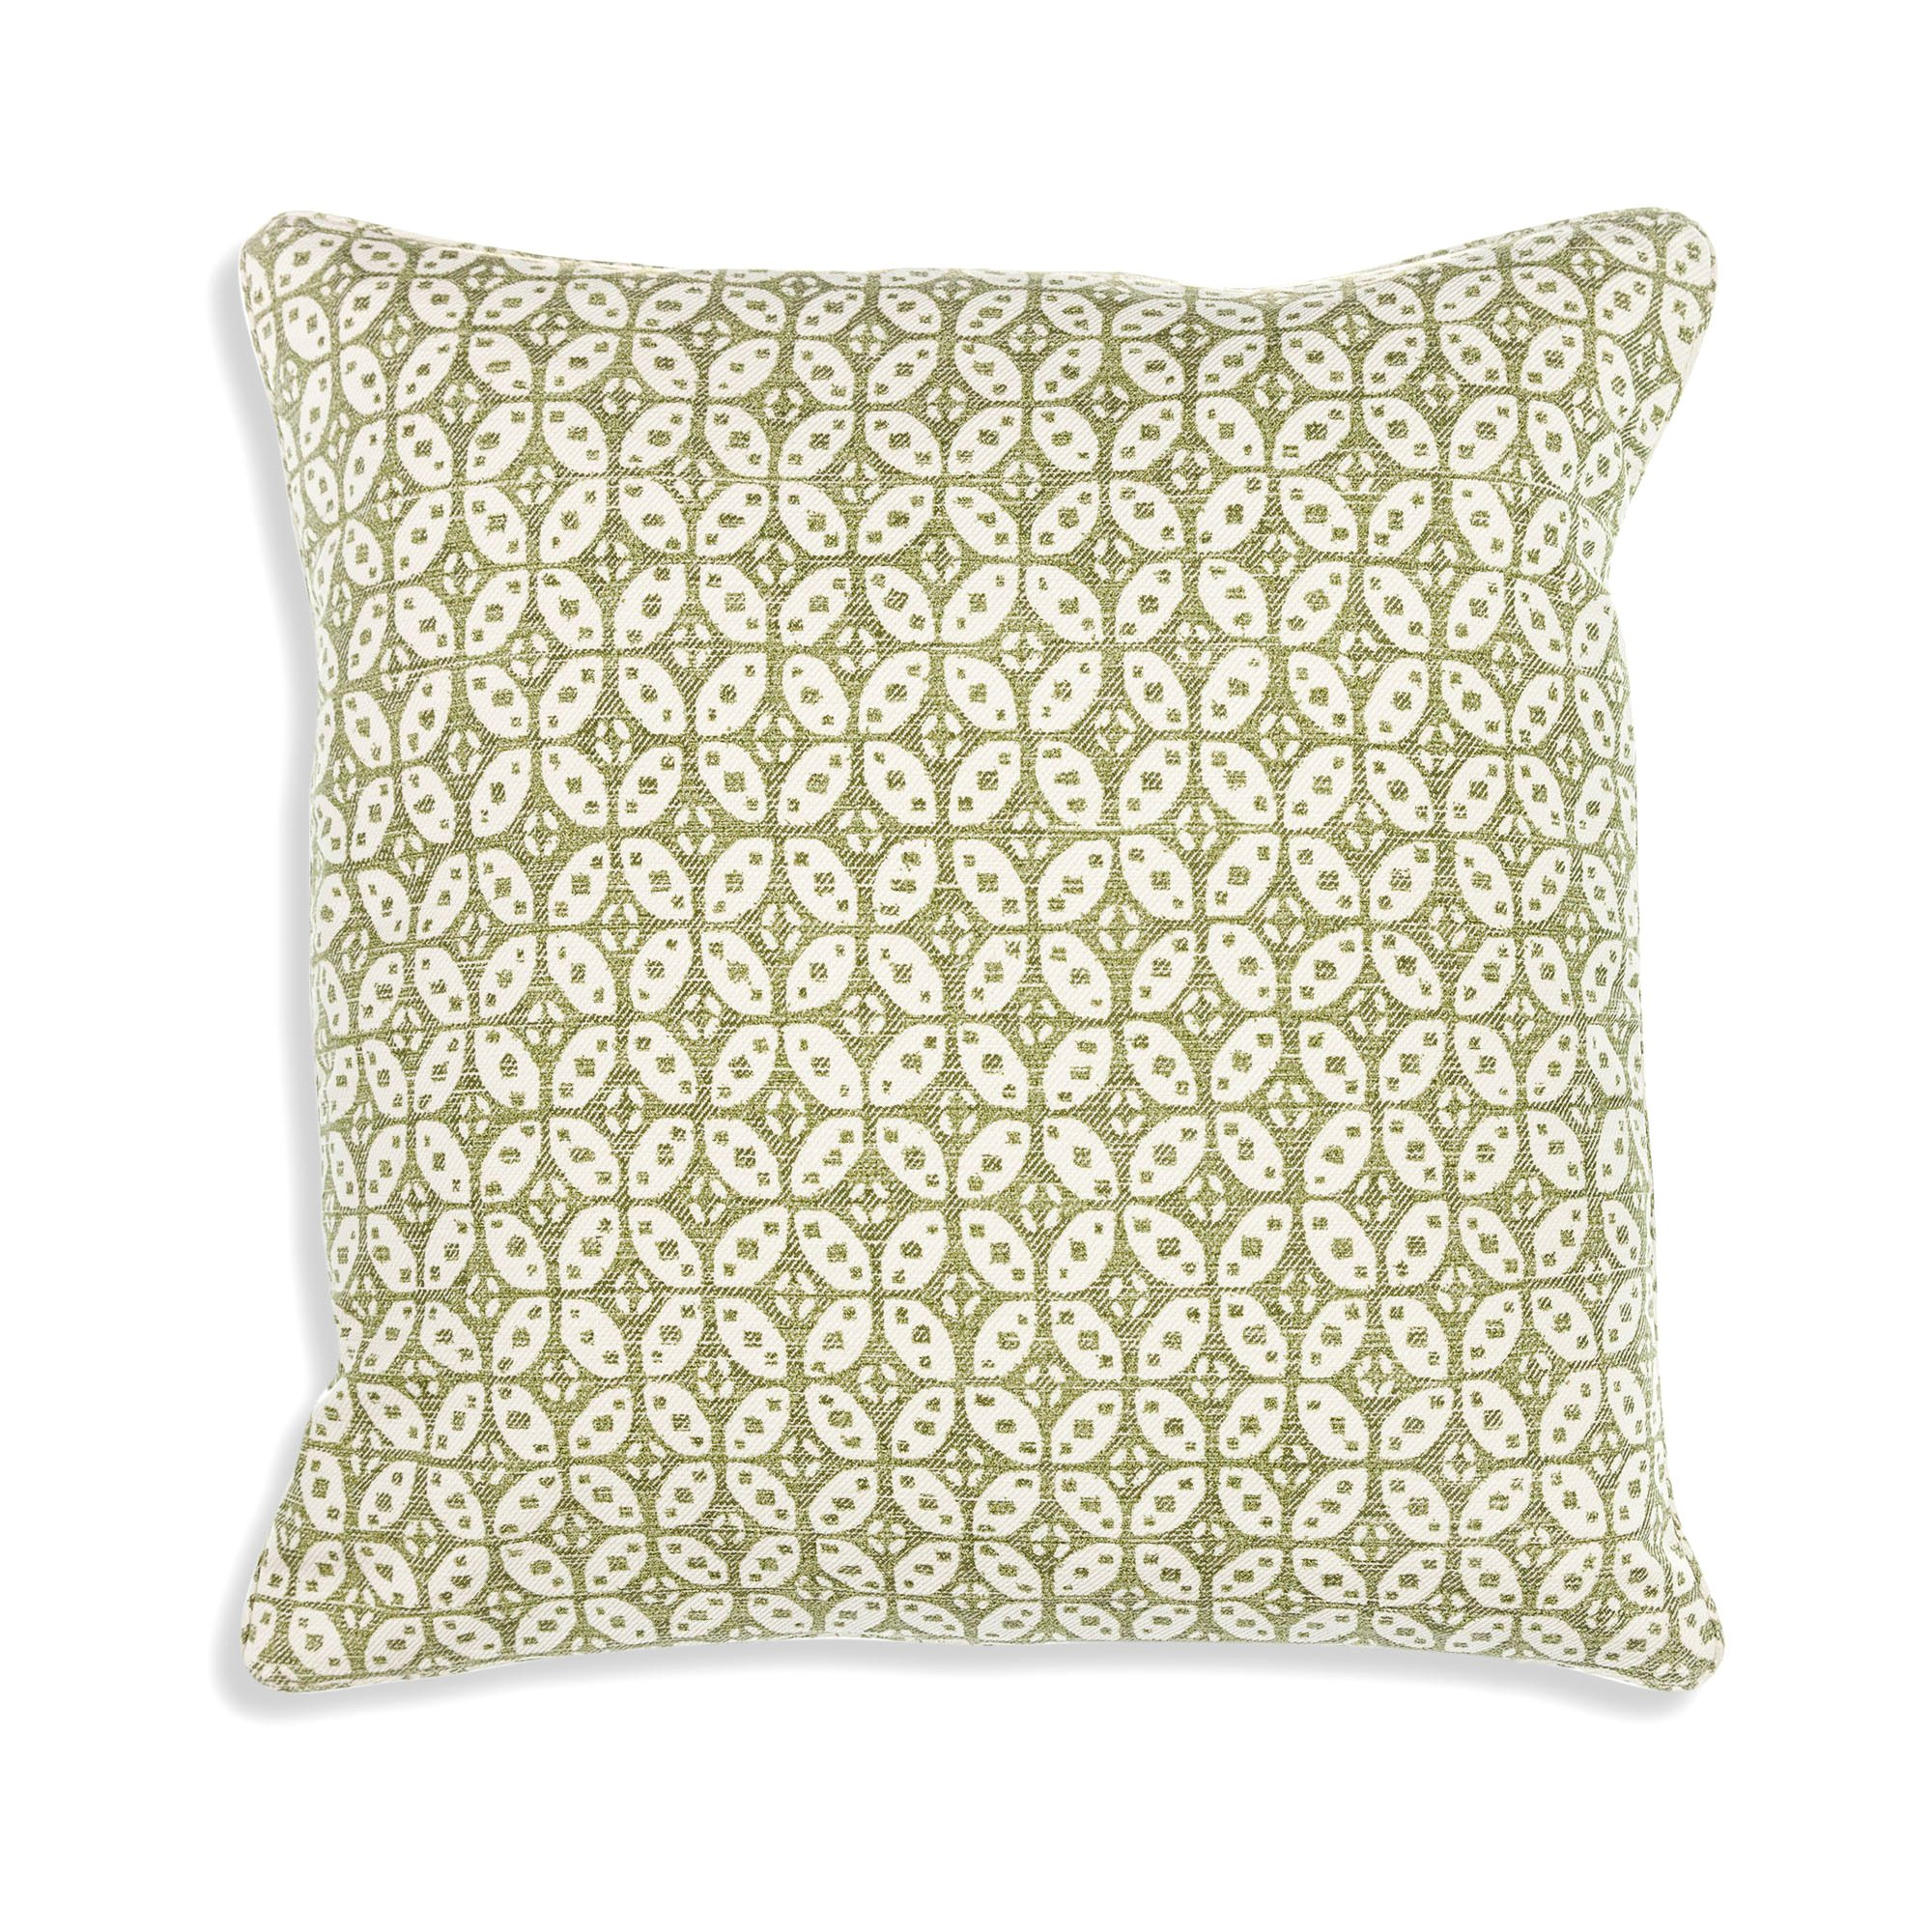 Small Square Cushion in Green Hamble